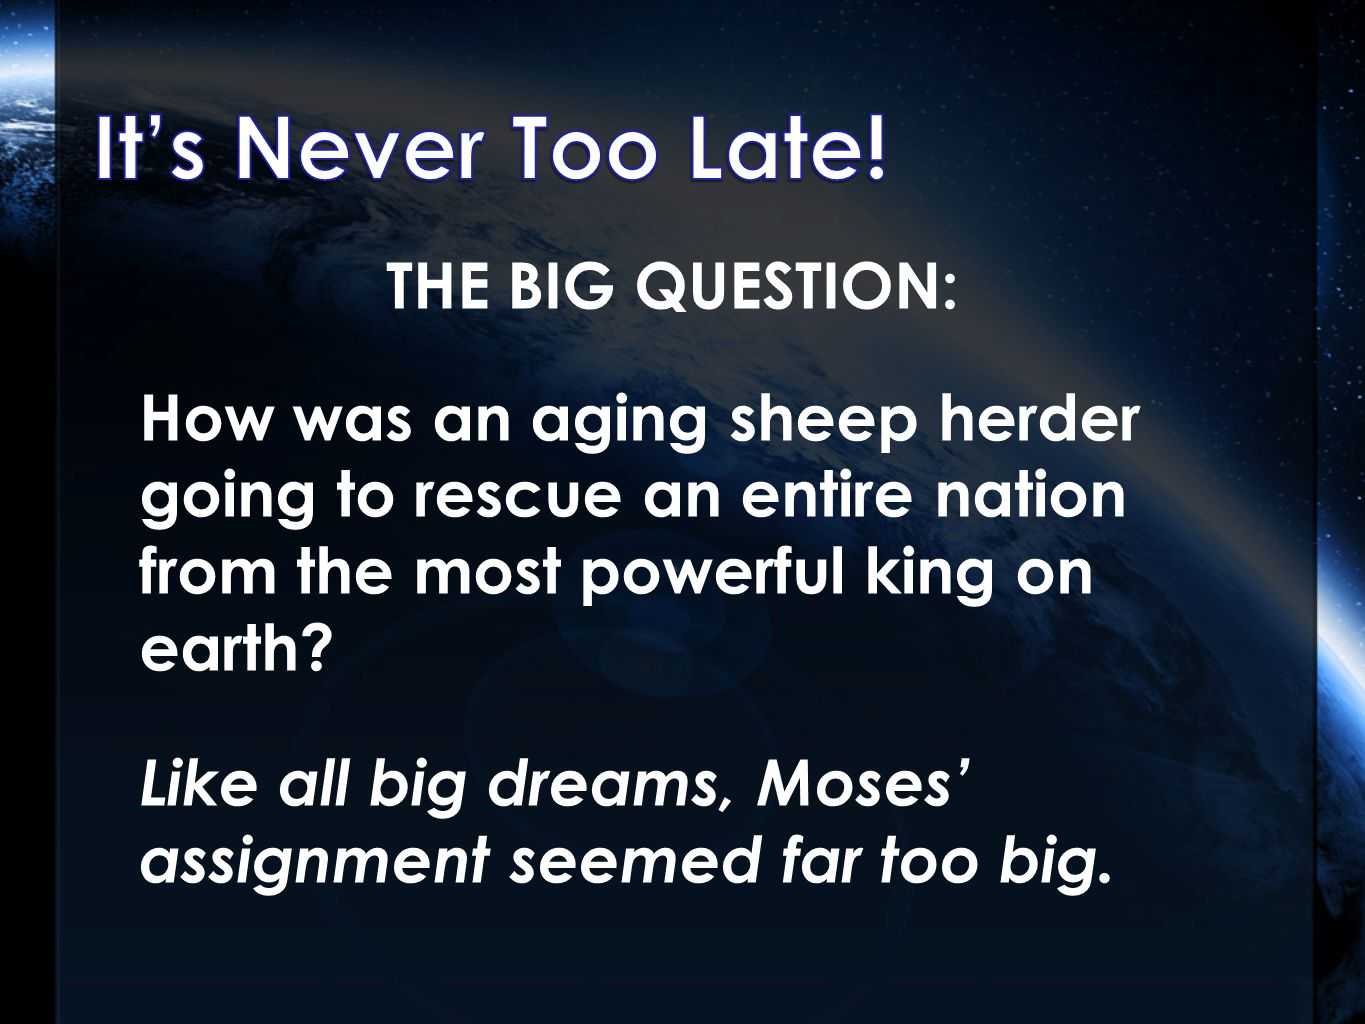 THE BIG QUESTION: How was an aging sheep herder going to rescue an entire nation from the most powerful king on earth.